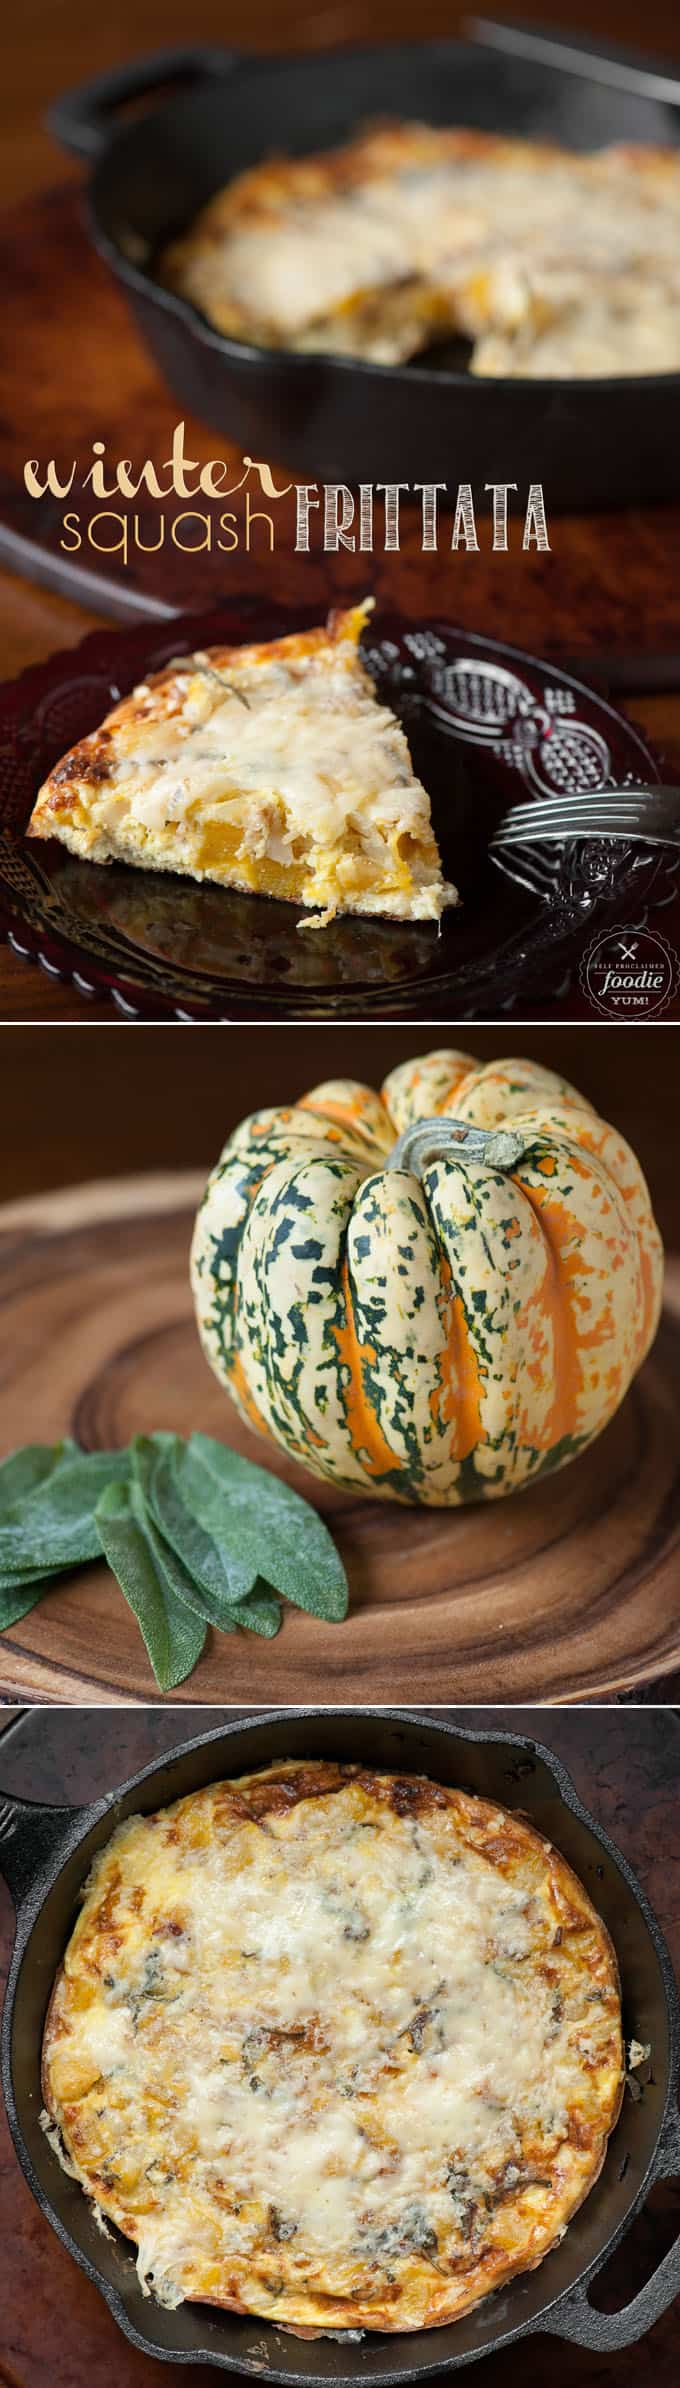 Embrace the changing seasons and make a delicious Winter Squash Frittata with sage and parmesan for a fabulous weekend breakfast.